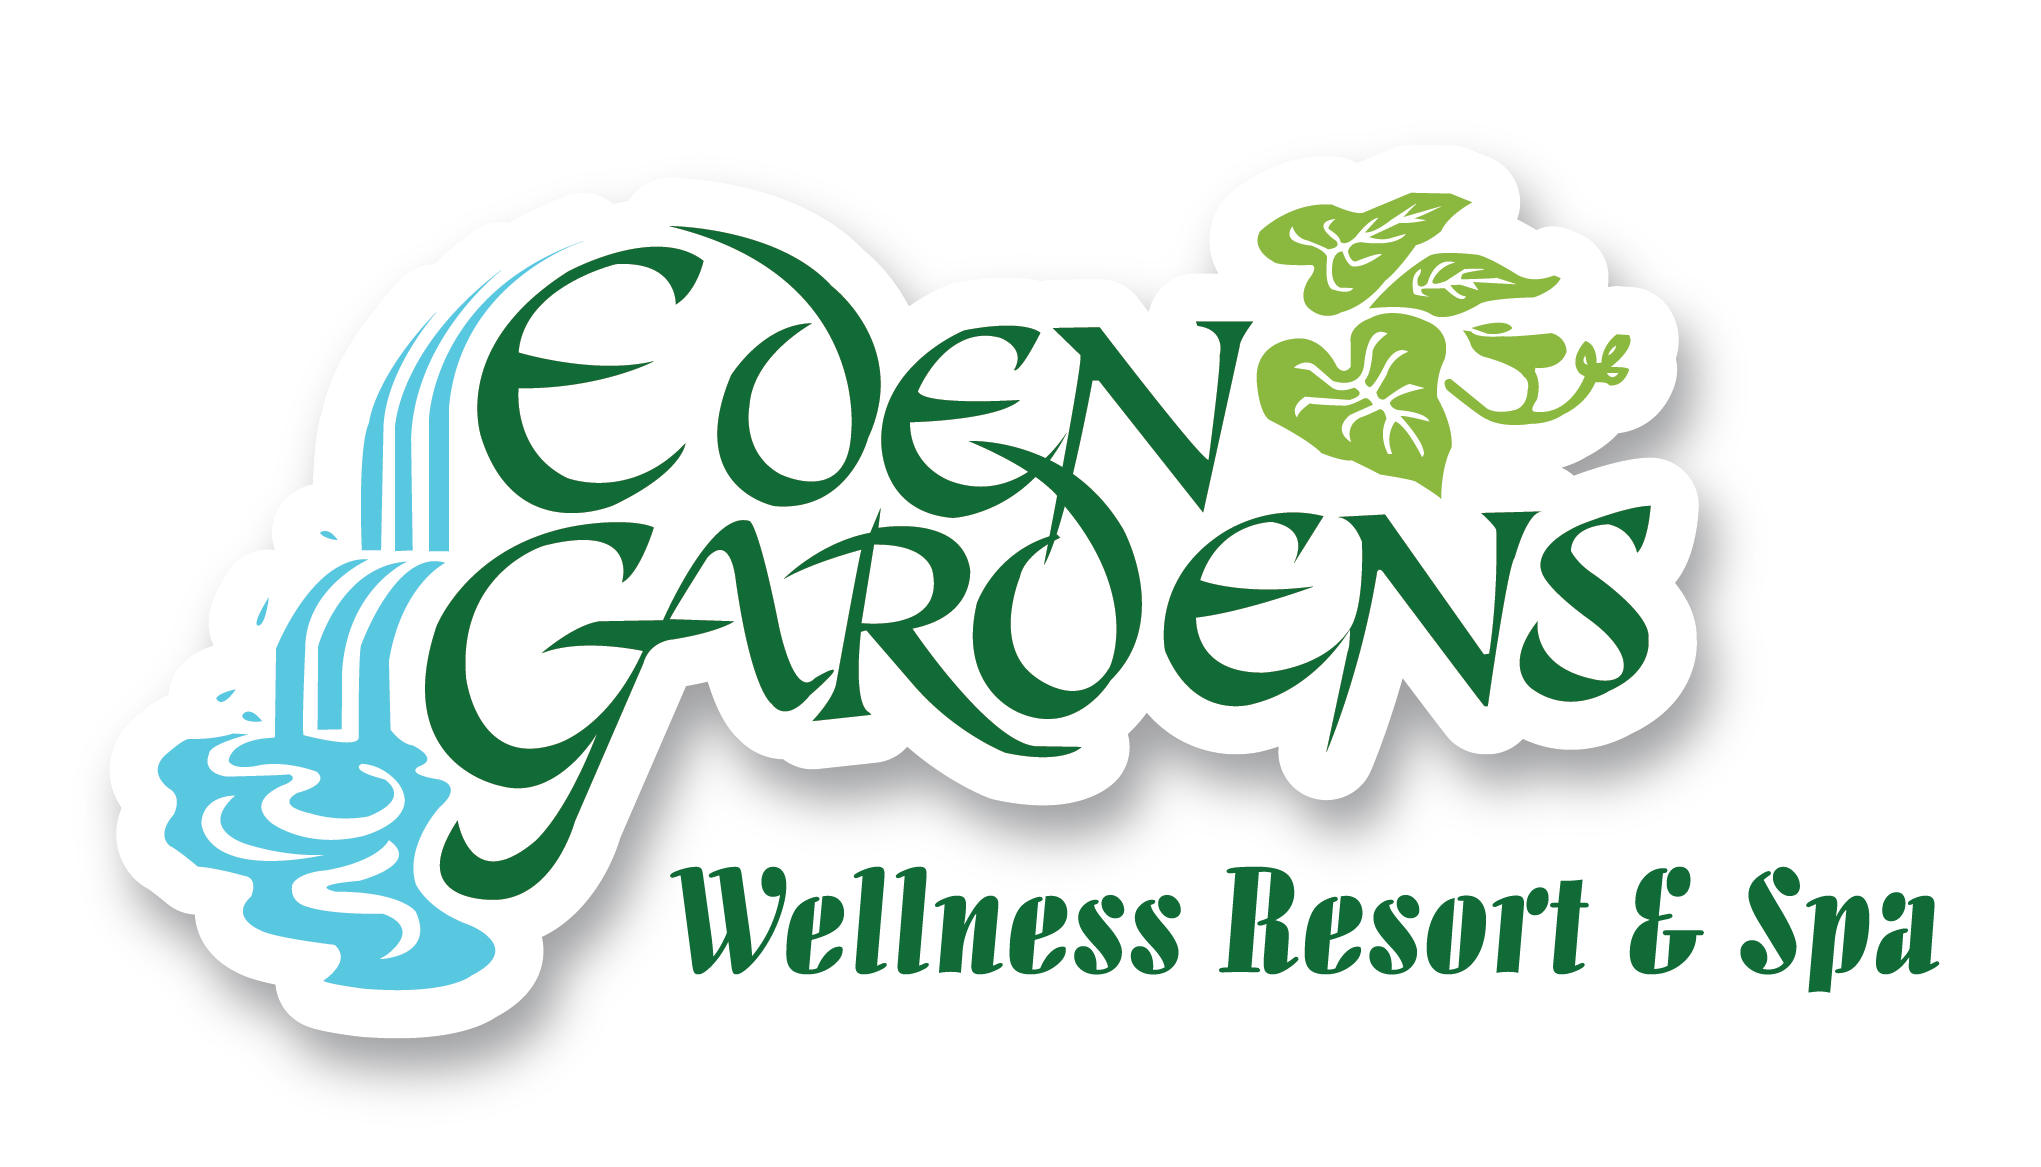 eden-gardens-revised-logo-02-1